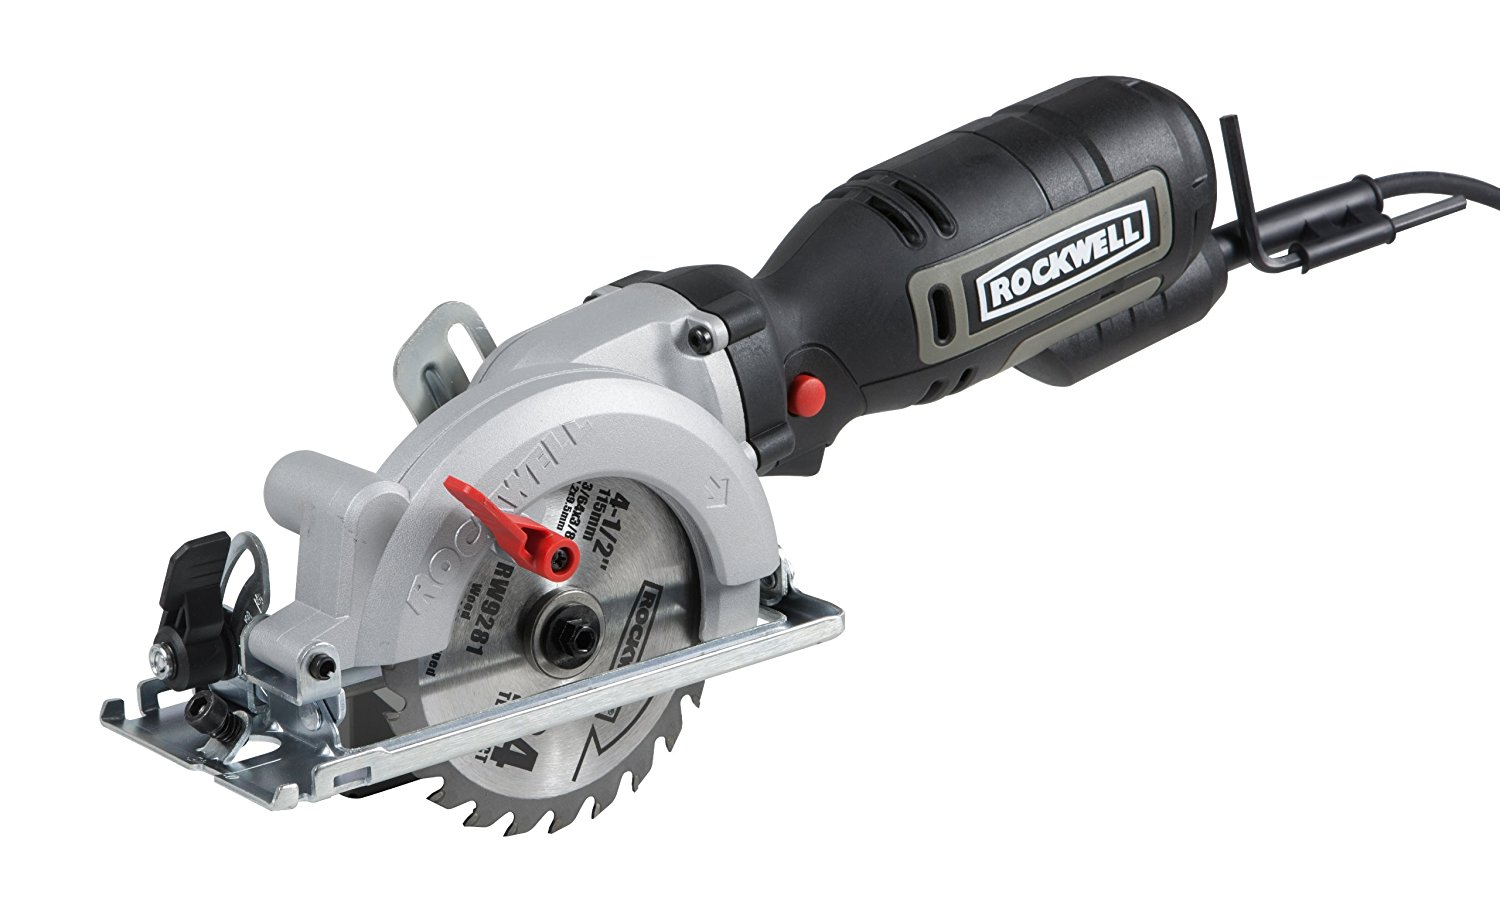 Porter cable pce381k 4 12 inch compact circular saw is it a porter cable pce381k 4 12 inch compact circular saw is it a rockwell rk3441k in disguise greentooth Choice Image